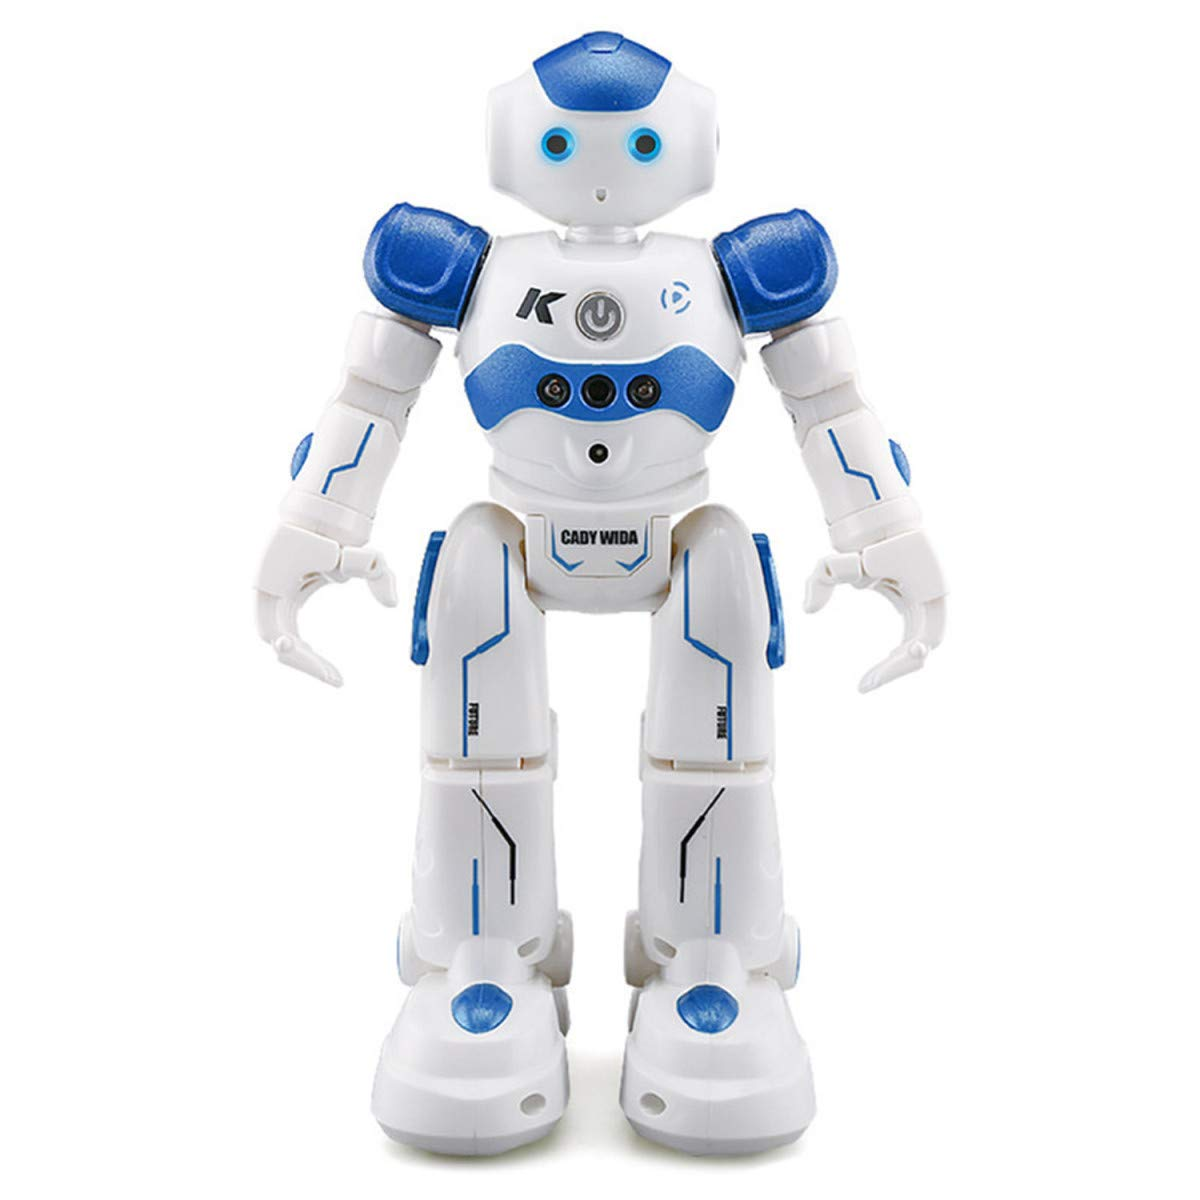 WEECOC Smart Robot Toys Gesture Control Remote Control Robot Kids Toys Birthday Can Singing Dancing Speaking Two Walking Models (White) by WEECOC (Image #2)